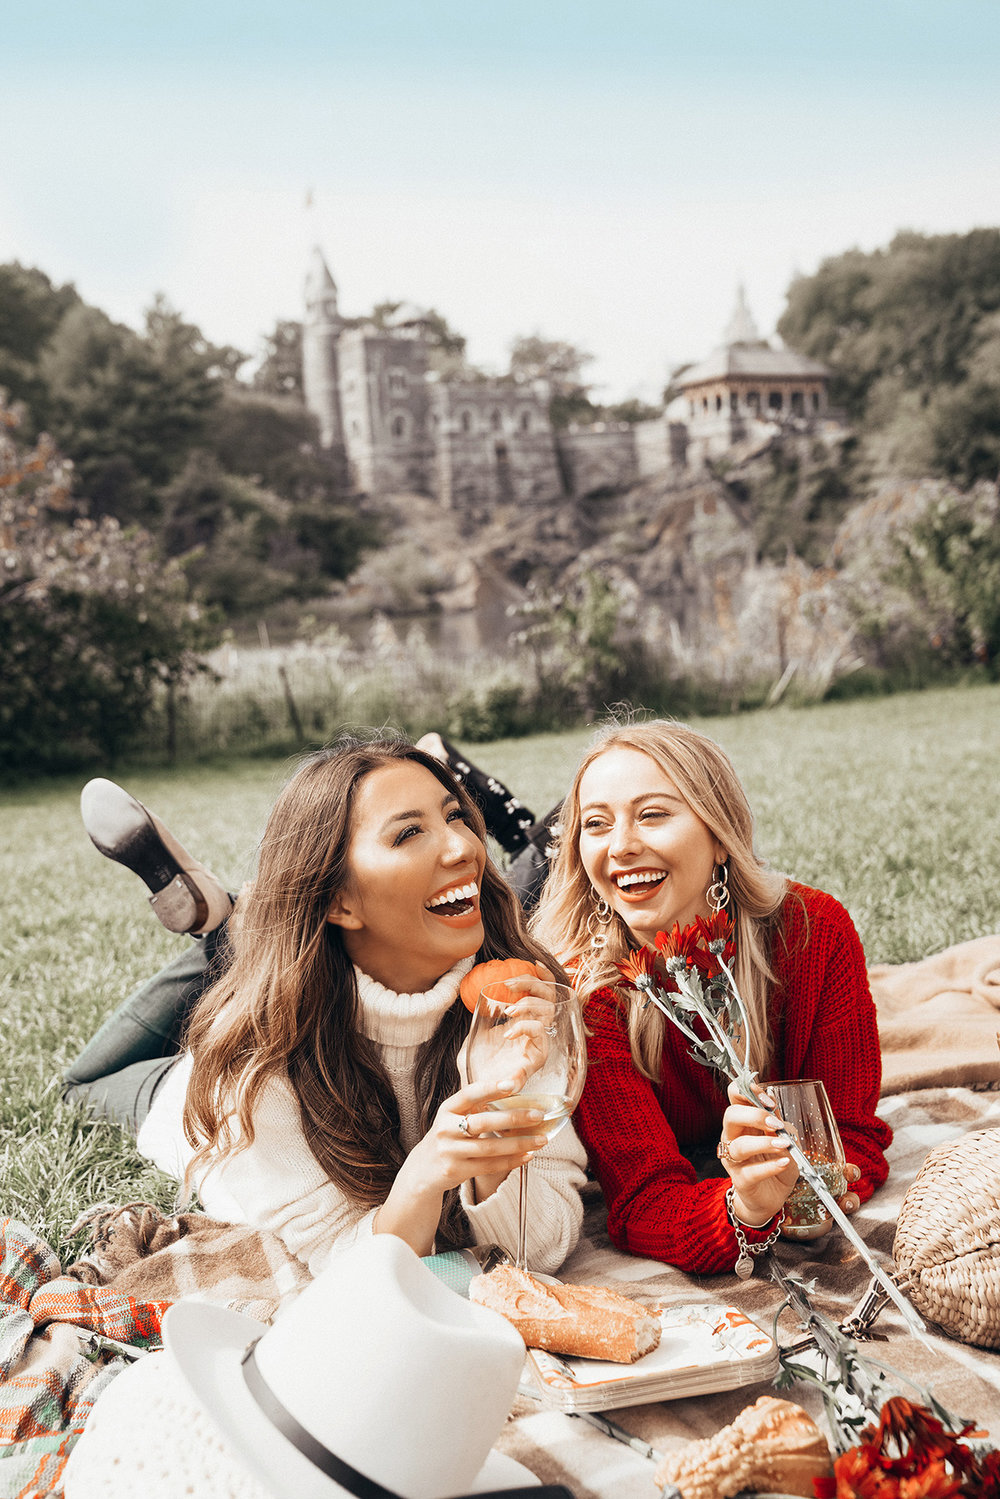 Fun picnic shoot with wine and food. Bloggers just want to have fun!